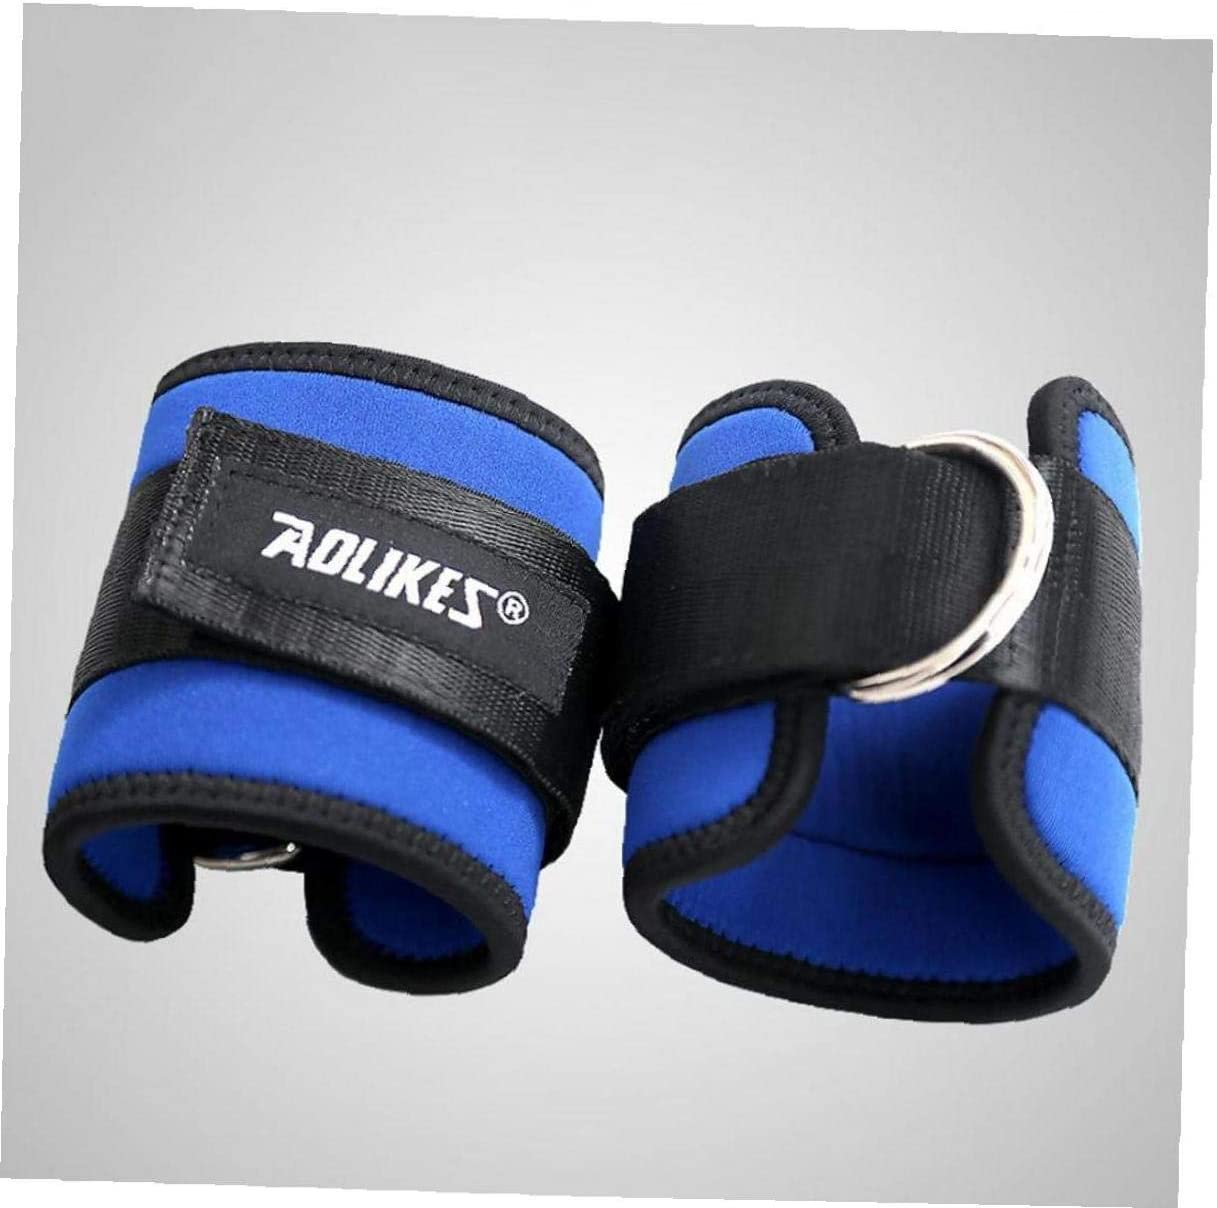 Lankater Ankle Weight Lifting Straps Multi Cable Attachment Training Band with Double D-ring Pulley Gym Fitness Accessories